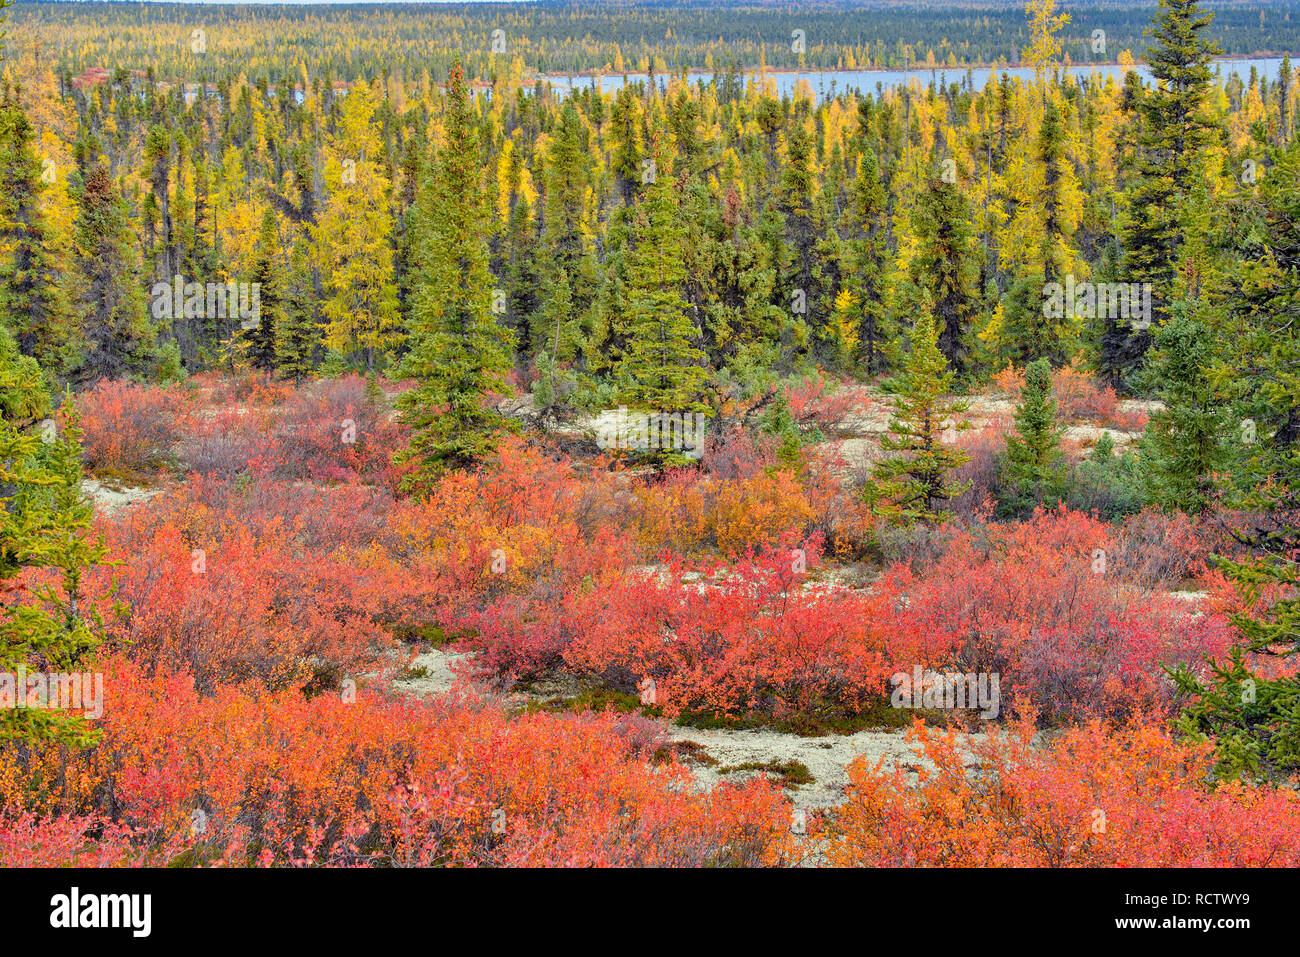 Boreal woodland (Barrenlands) with black spruce, dwarf birch and arctic blueberry in autumn, Arctic Haven Lodge, Ennadai Lake, Nunavut, Canada - Stock Image